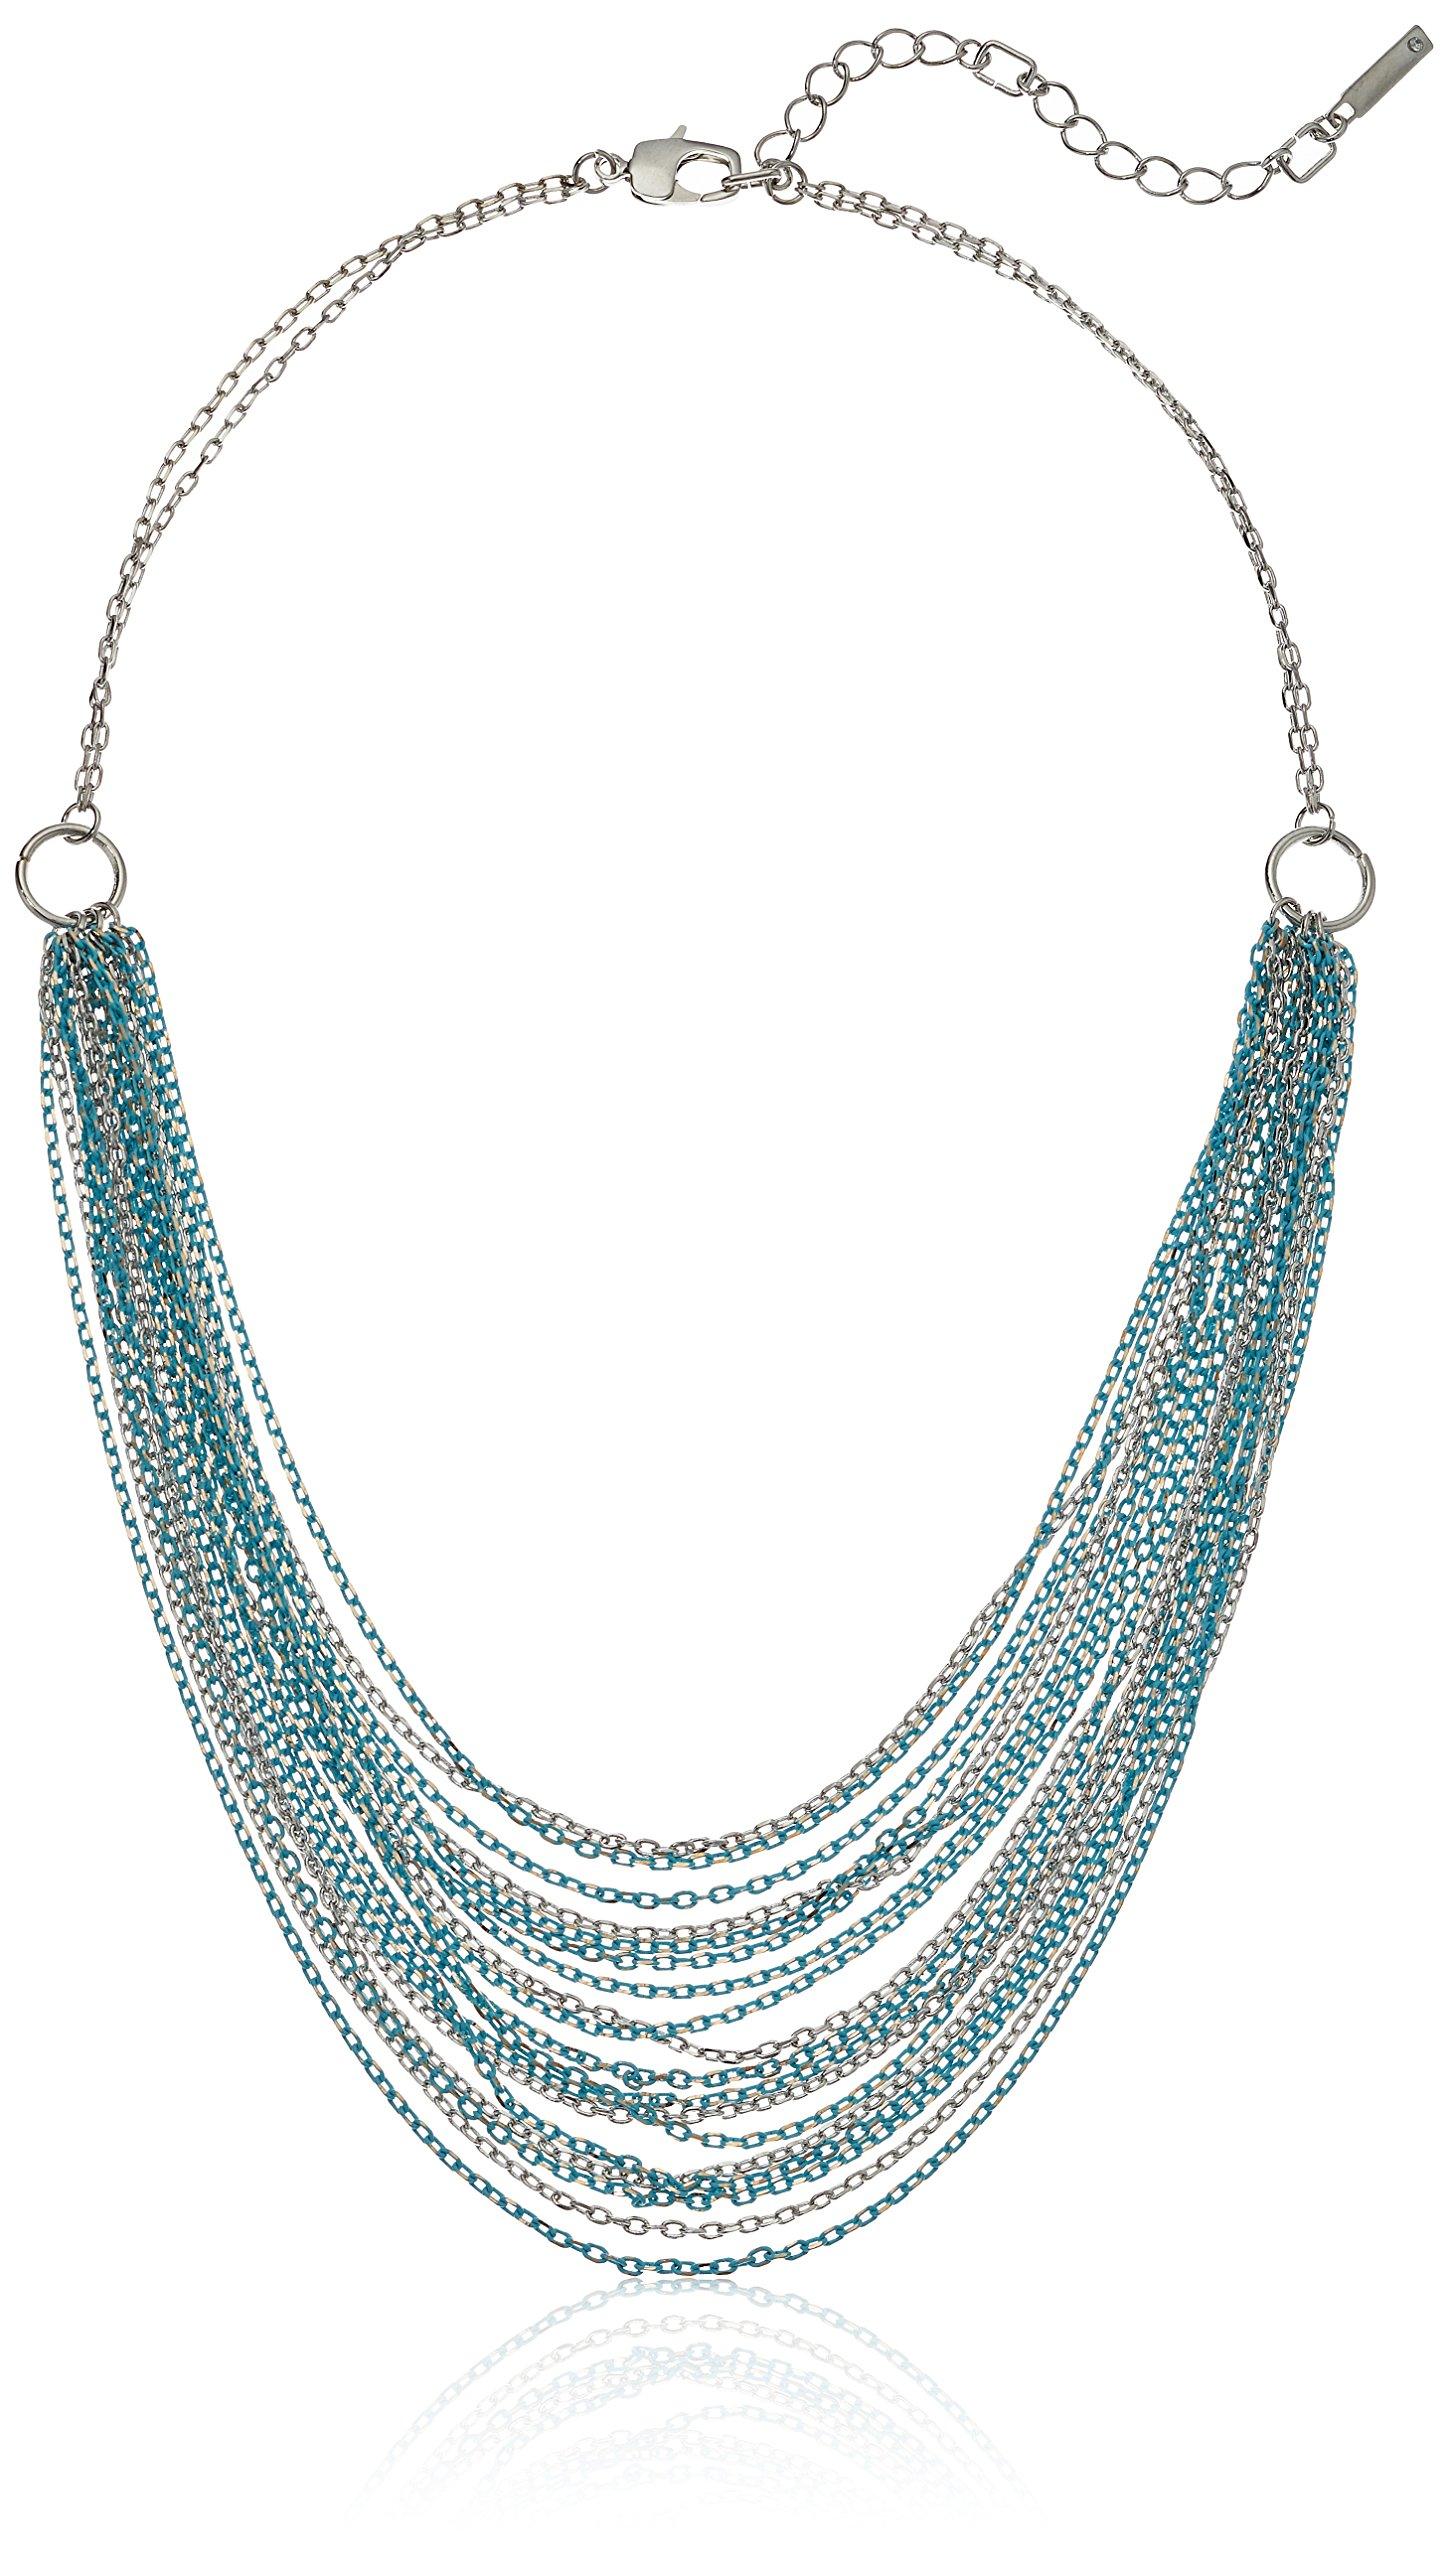 Kenneth Cole New York Women's Short Multi Row Chain Strand Necklace, Aqua, One Size